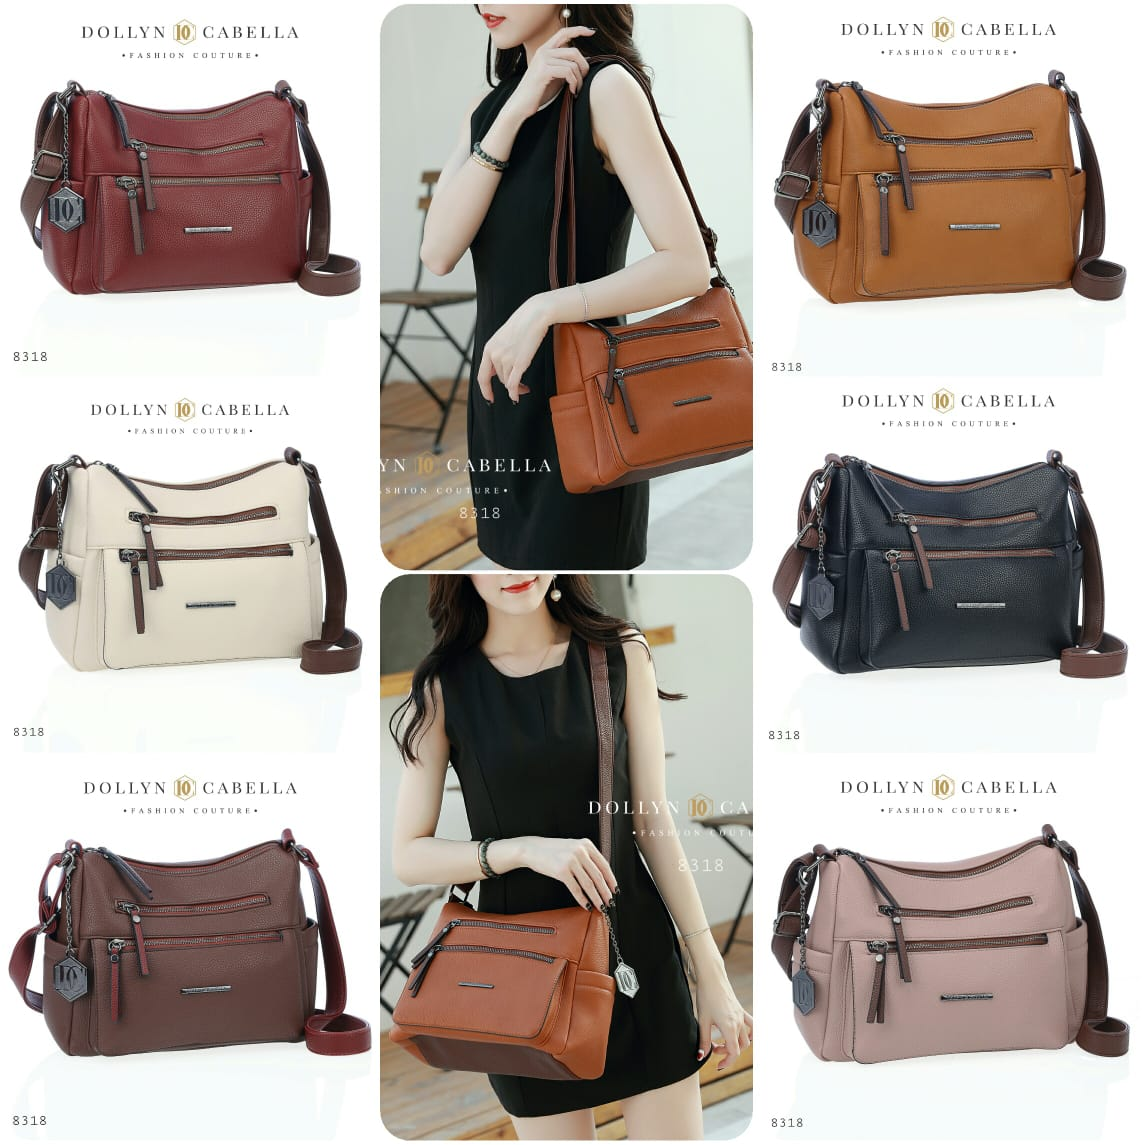 Jual tas import di kalimantan 8318MR